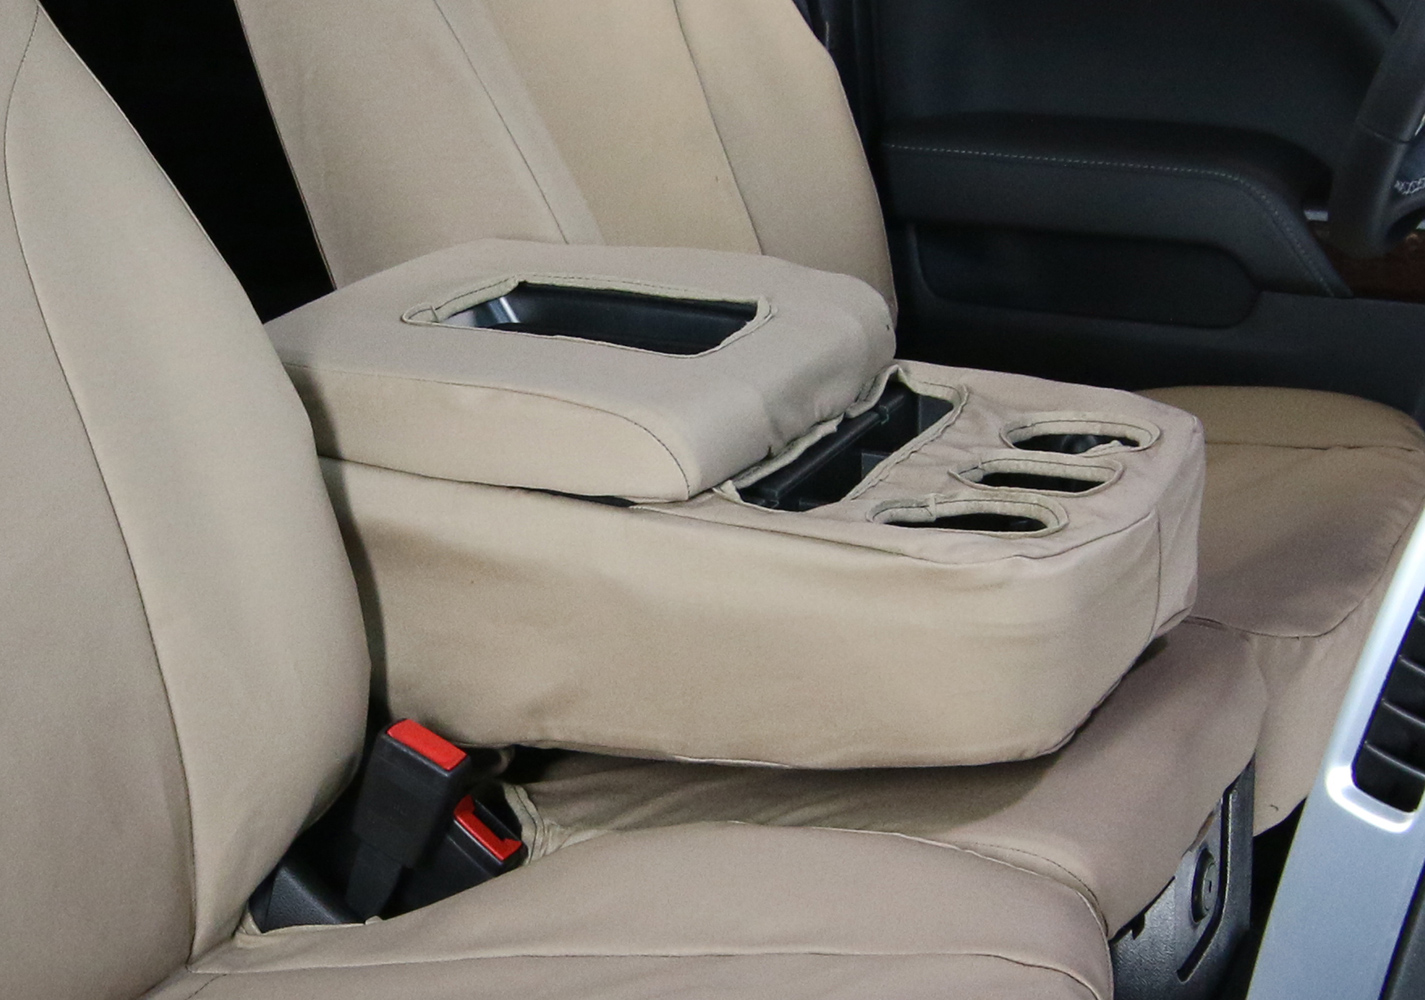 Toyota Sienna Seat Covers >> Saddleman Canvas Car Seat Covers, Saddleman Canvas Seat Cover